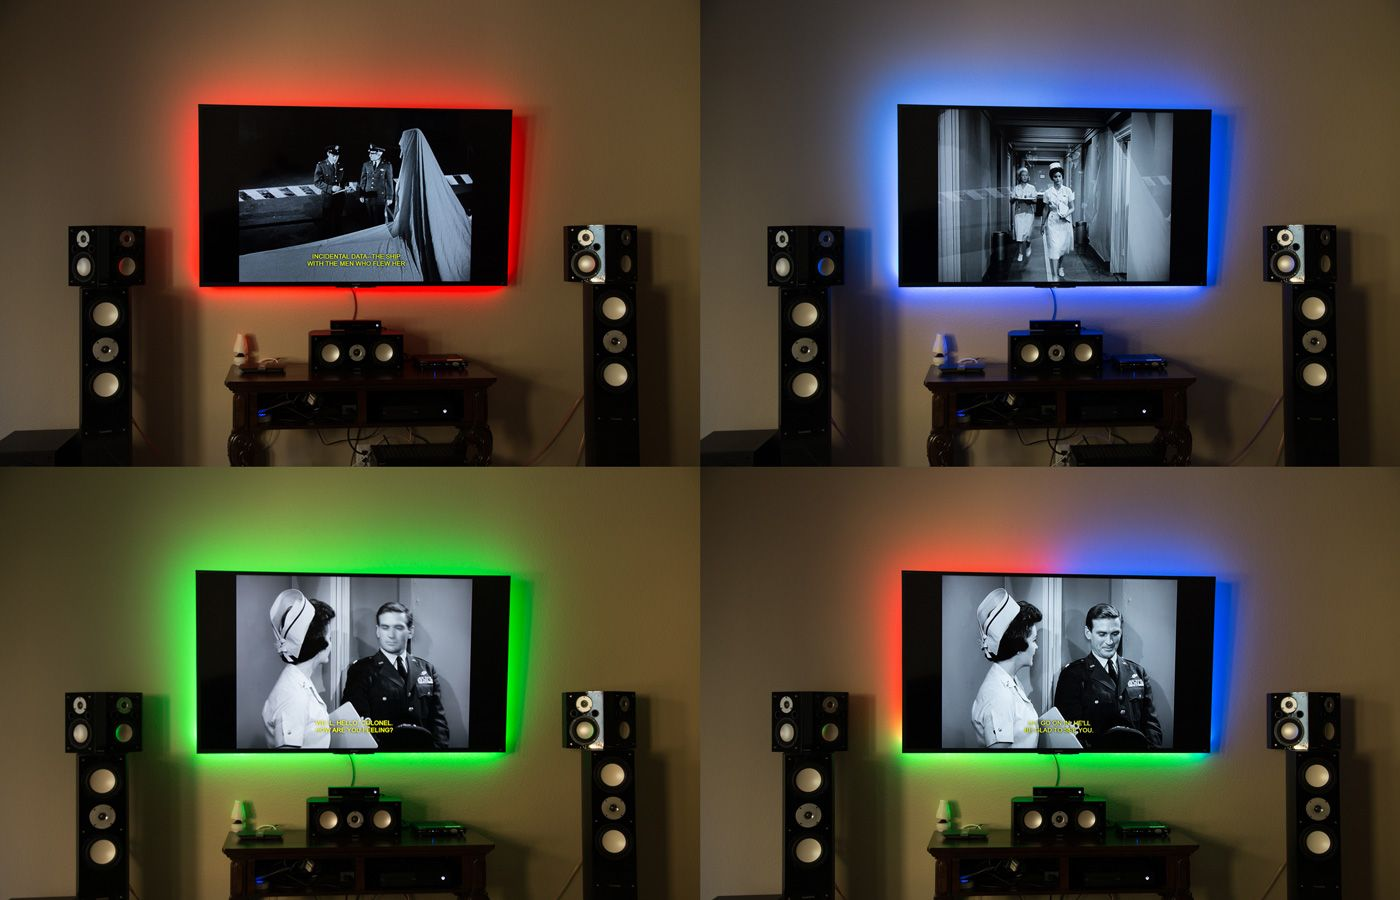 Phillips Hue Behind TV? - AVS | Home Theater Discussions And ...